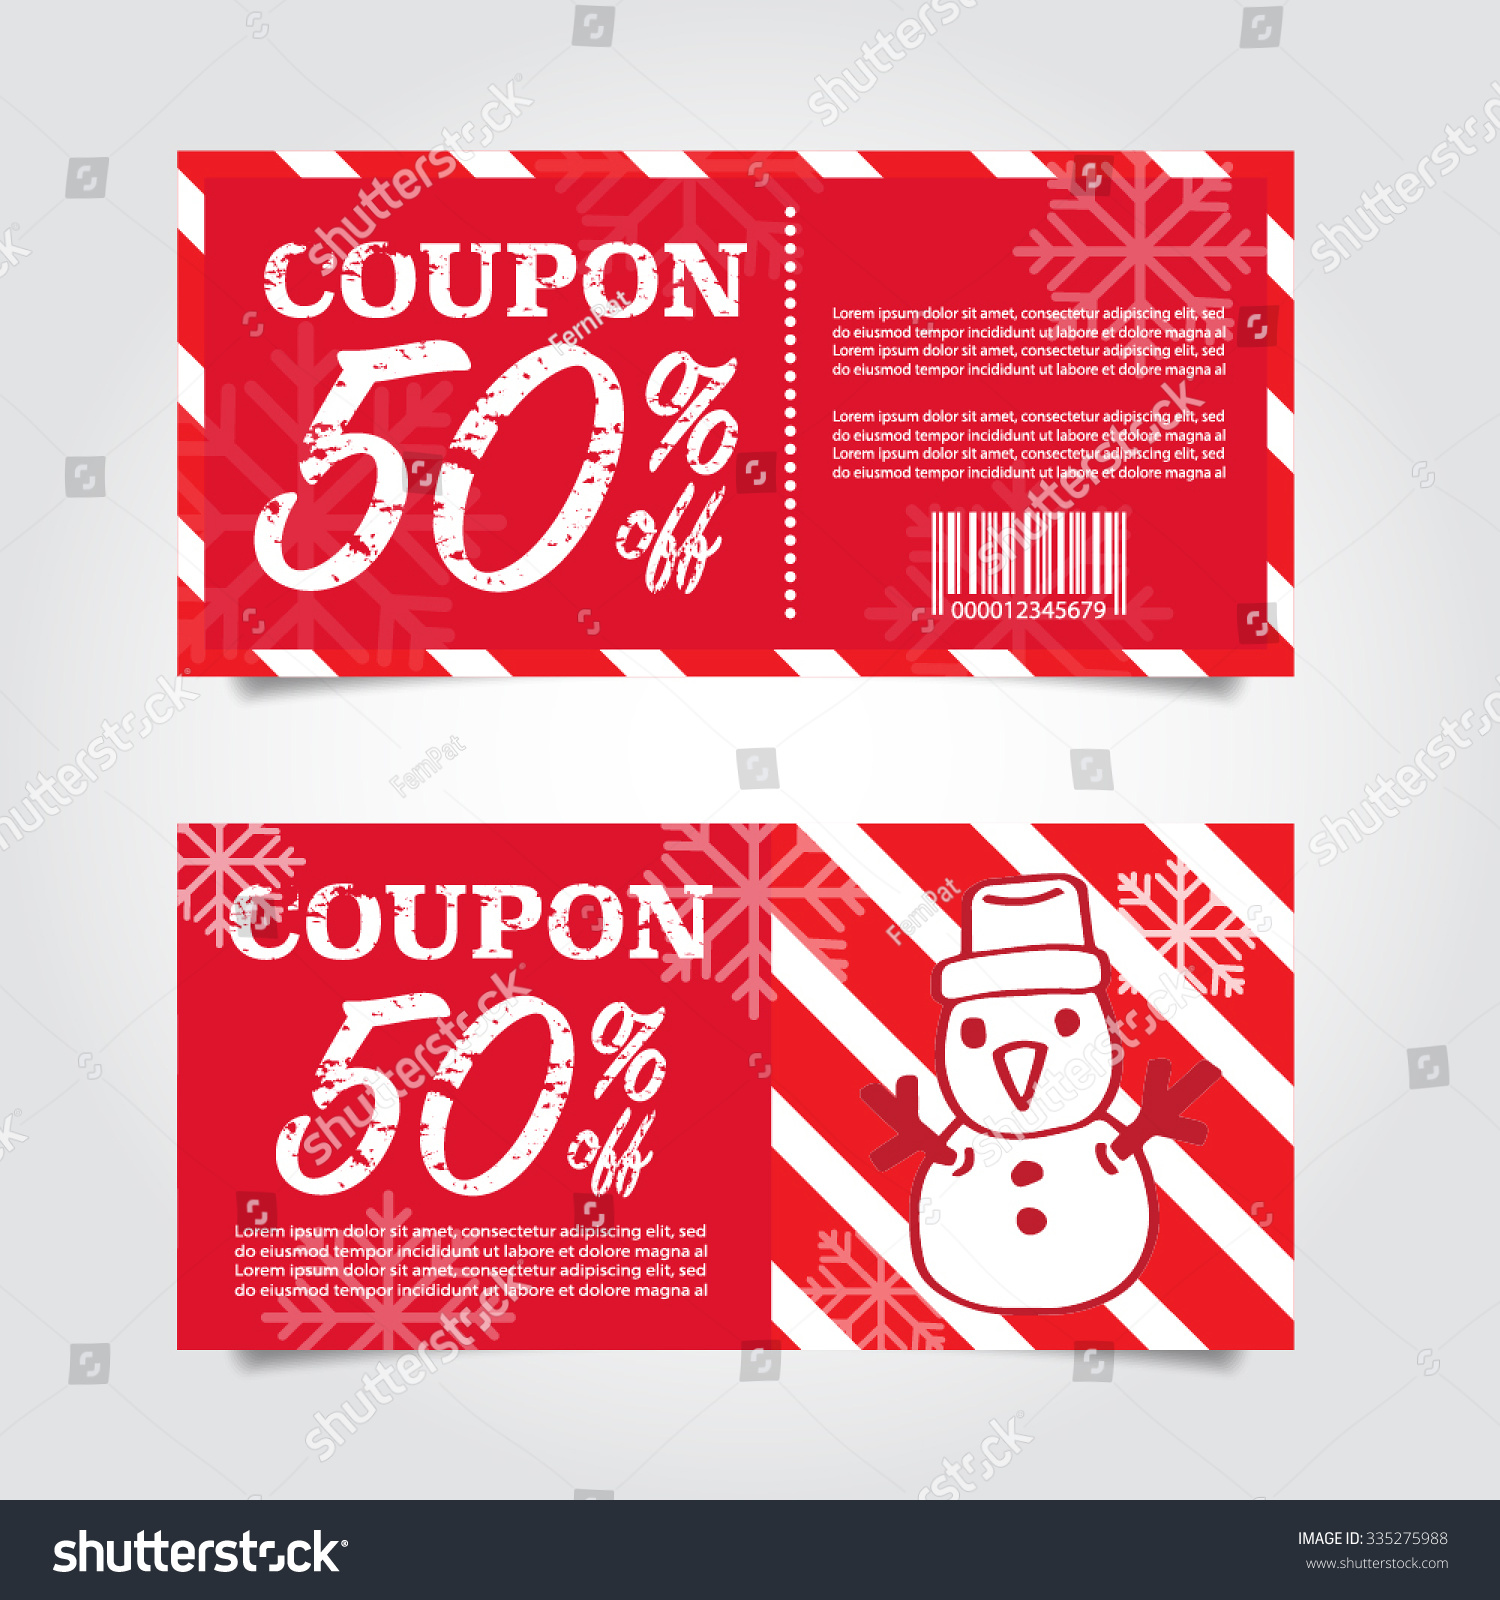 beautiful christmas tags and coupons stock vector beautiful christmas tags and coupons stock vector illustration 335275988 shutterstock